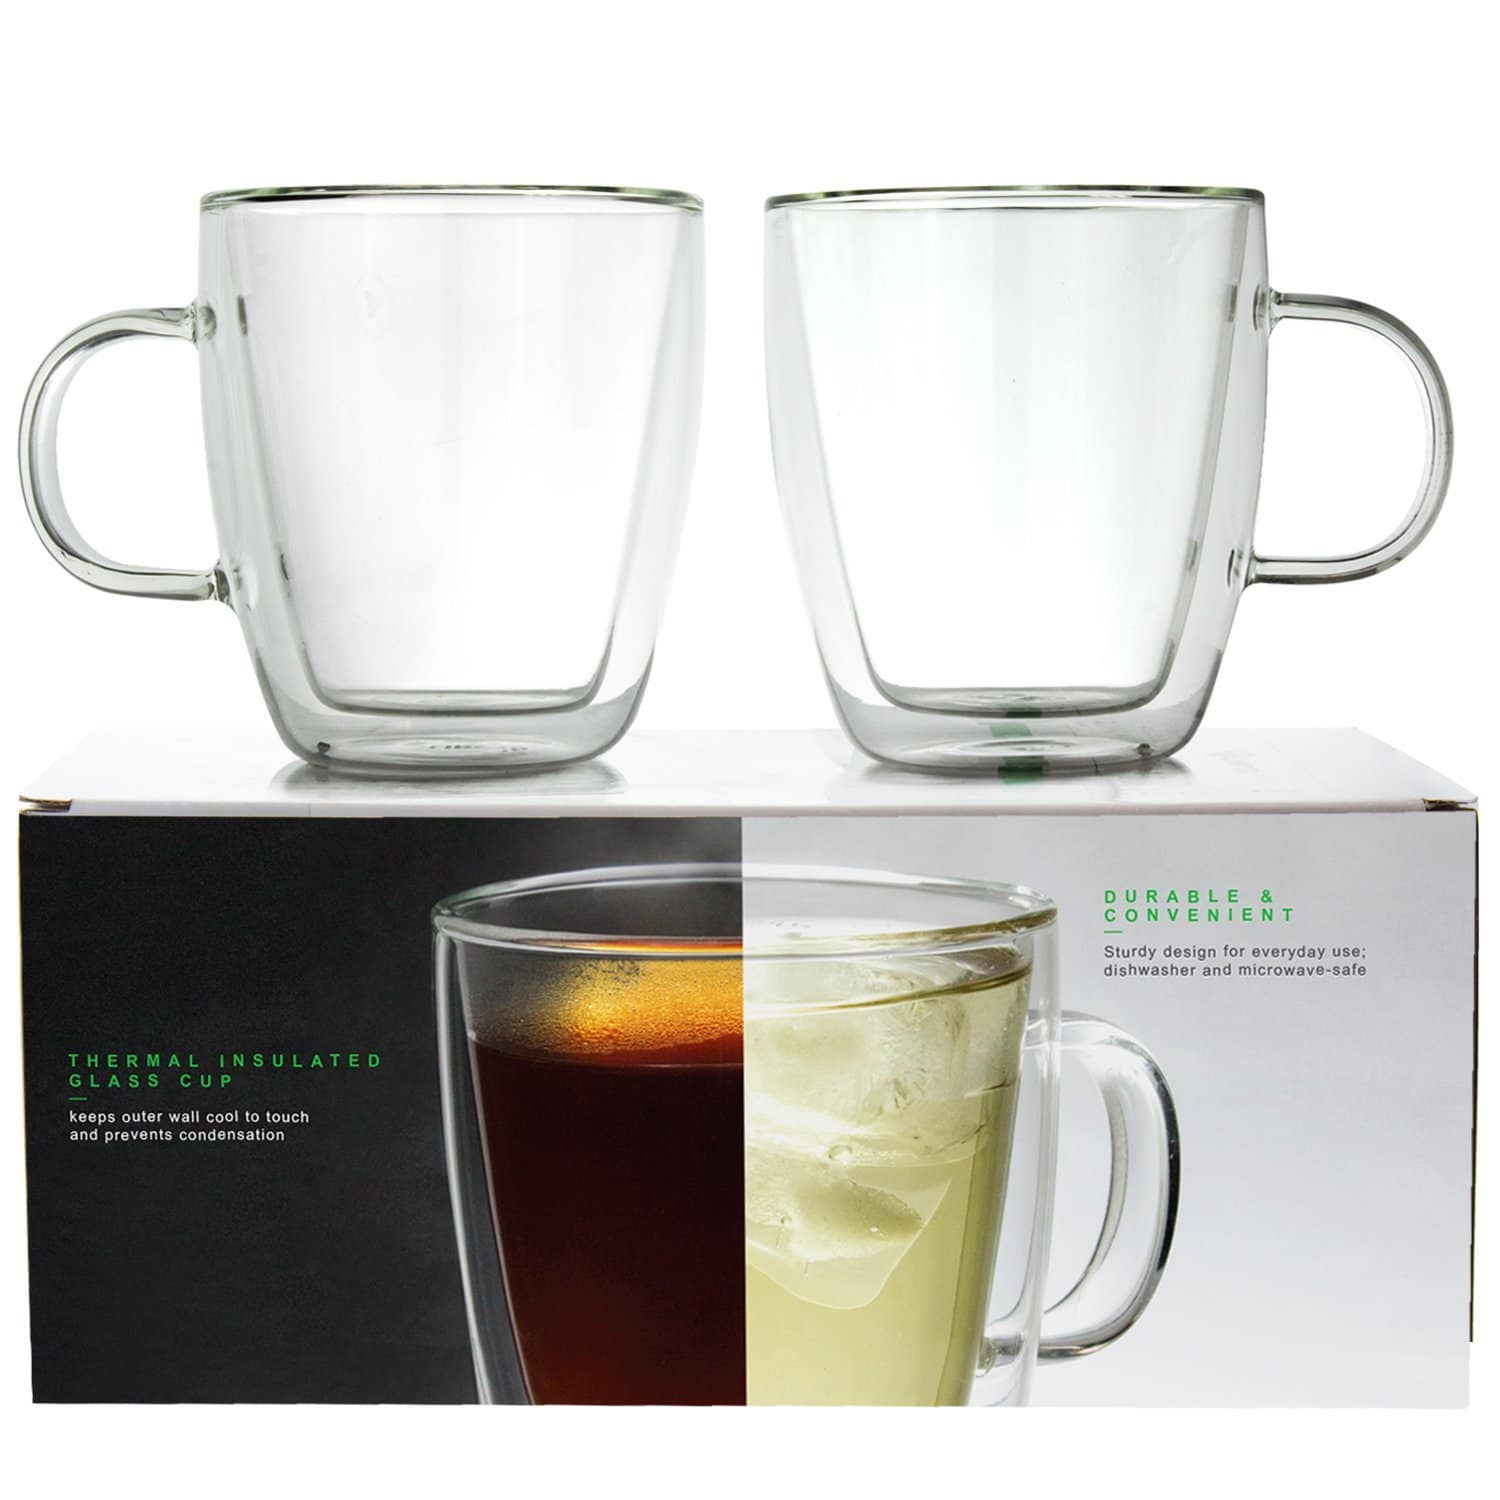 Peachy Review A Pro Glass Cups Coffee Cup furniture Cool Glass Cups